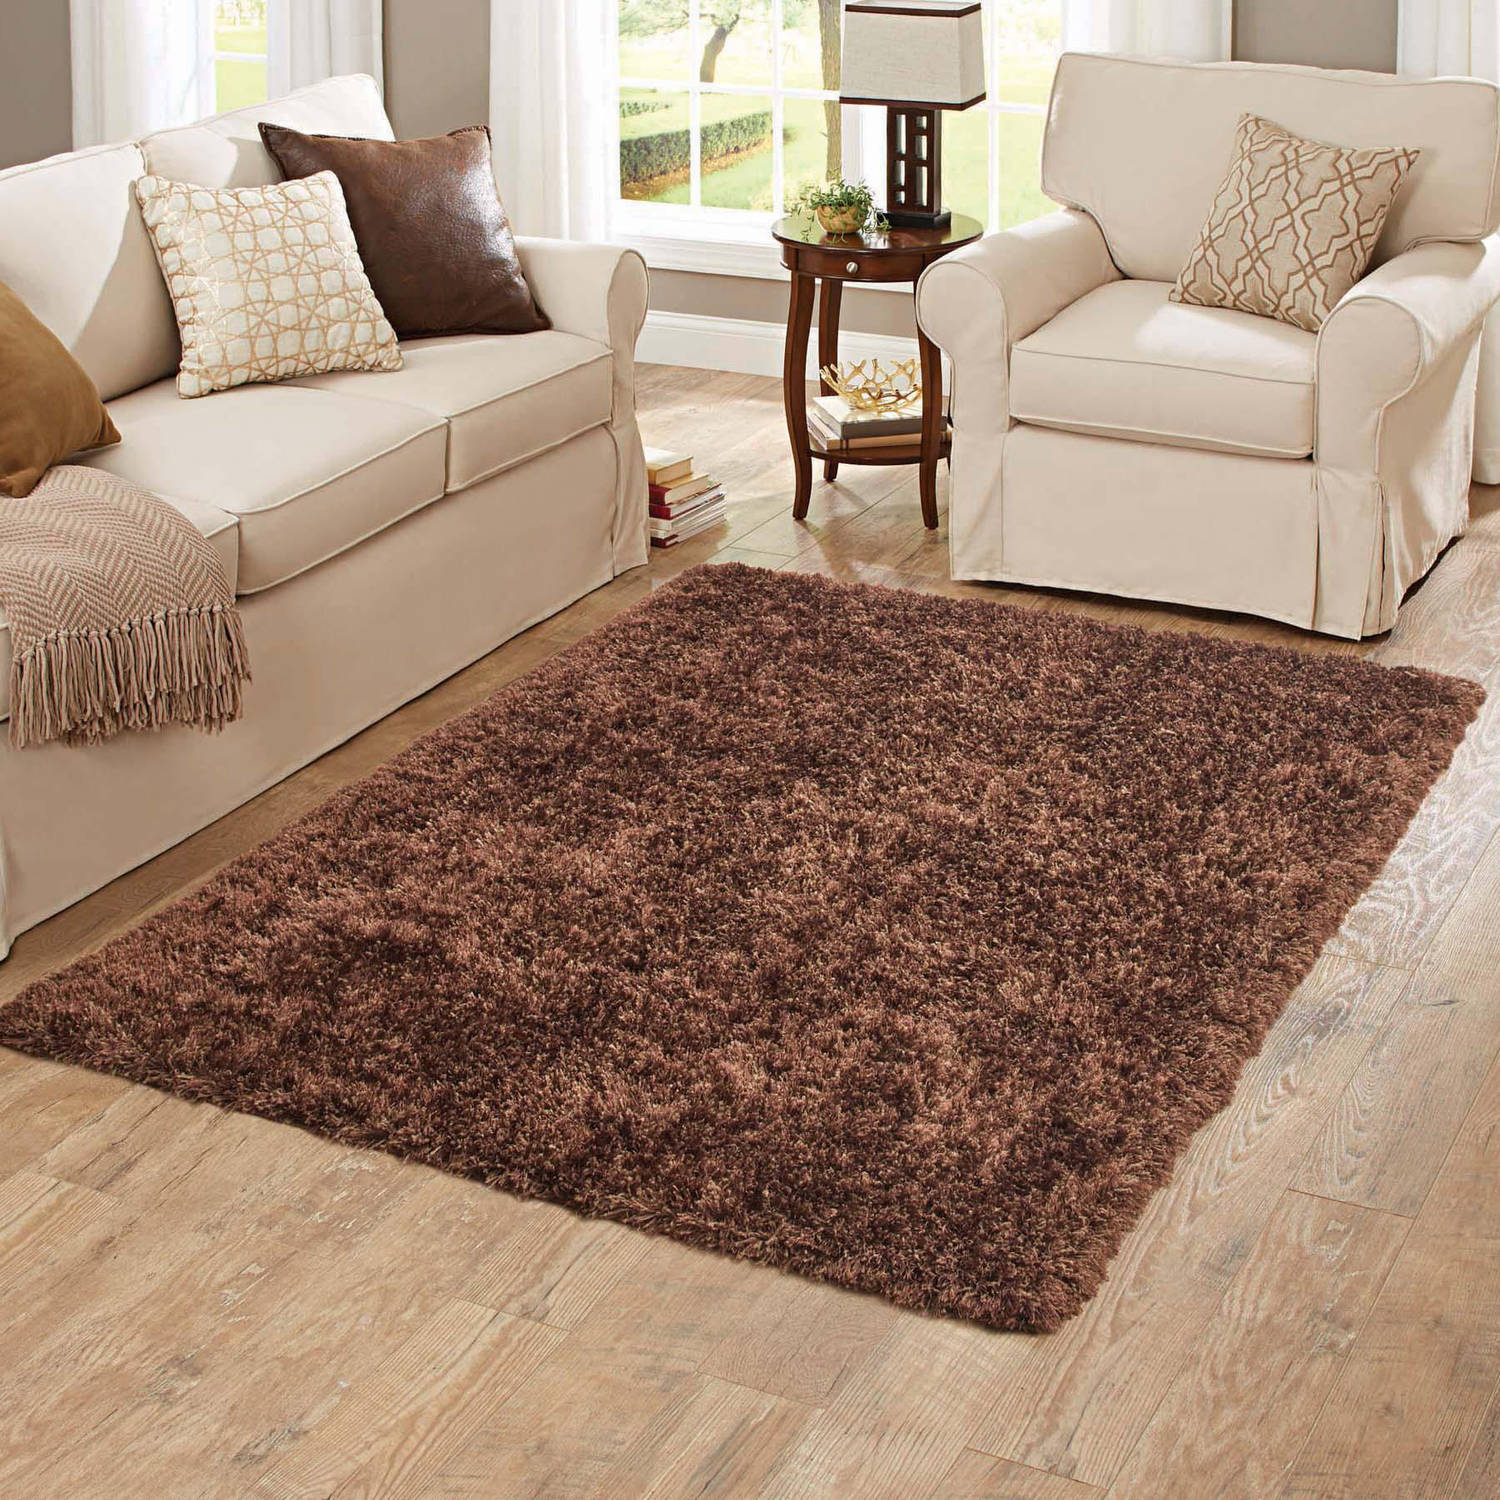 Better Homes and Gardens Brown Plush Shag Polyester Rug, Brown